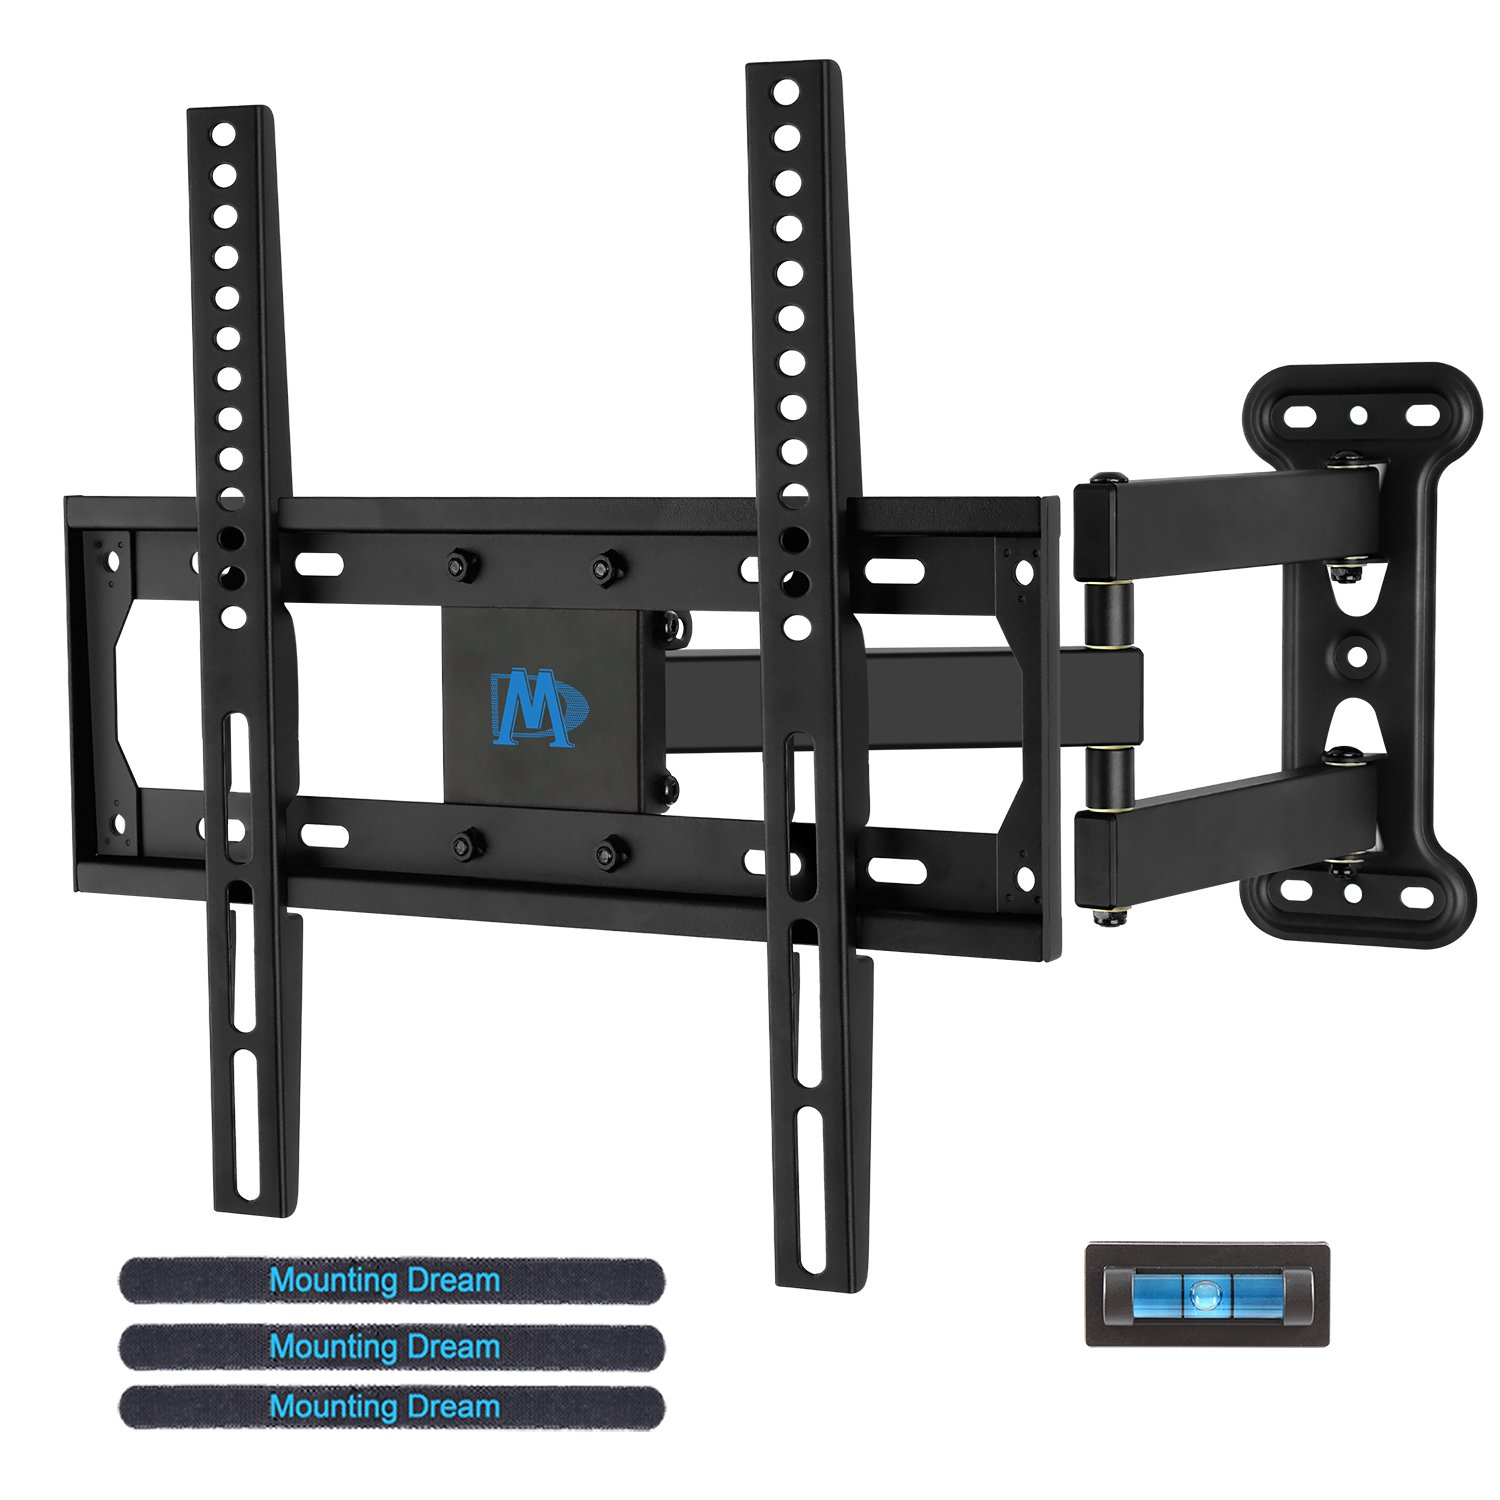 Charmant Mounting Dream MD2377 TV Wall Mount Bracket For Most Of 26 55 Inch LED,  LCD, OLED Flat Screen TV With Full Motion Swivel Articulating Arm Up To  VESA ...